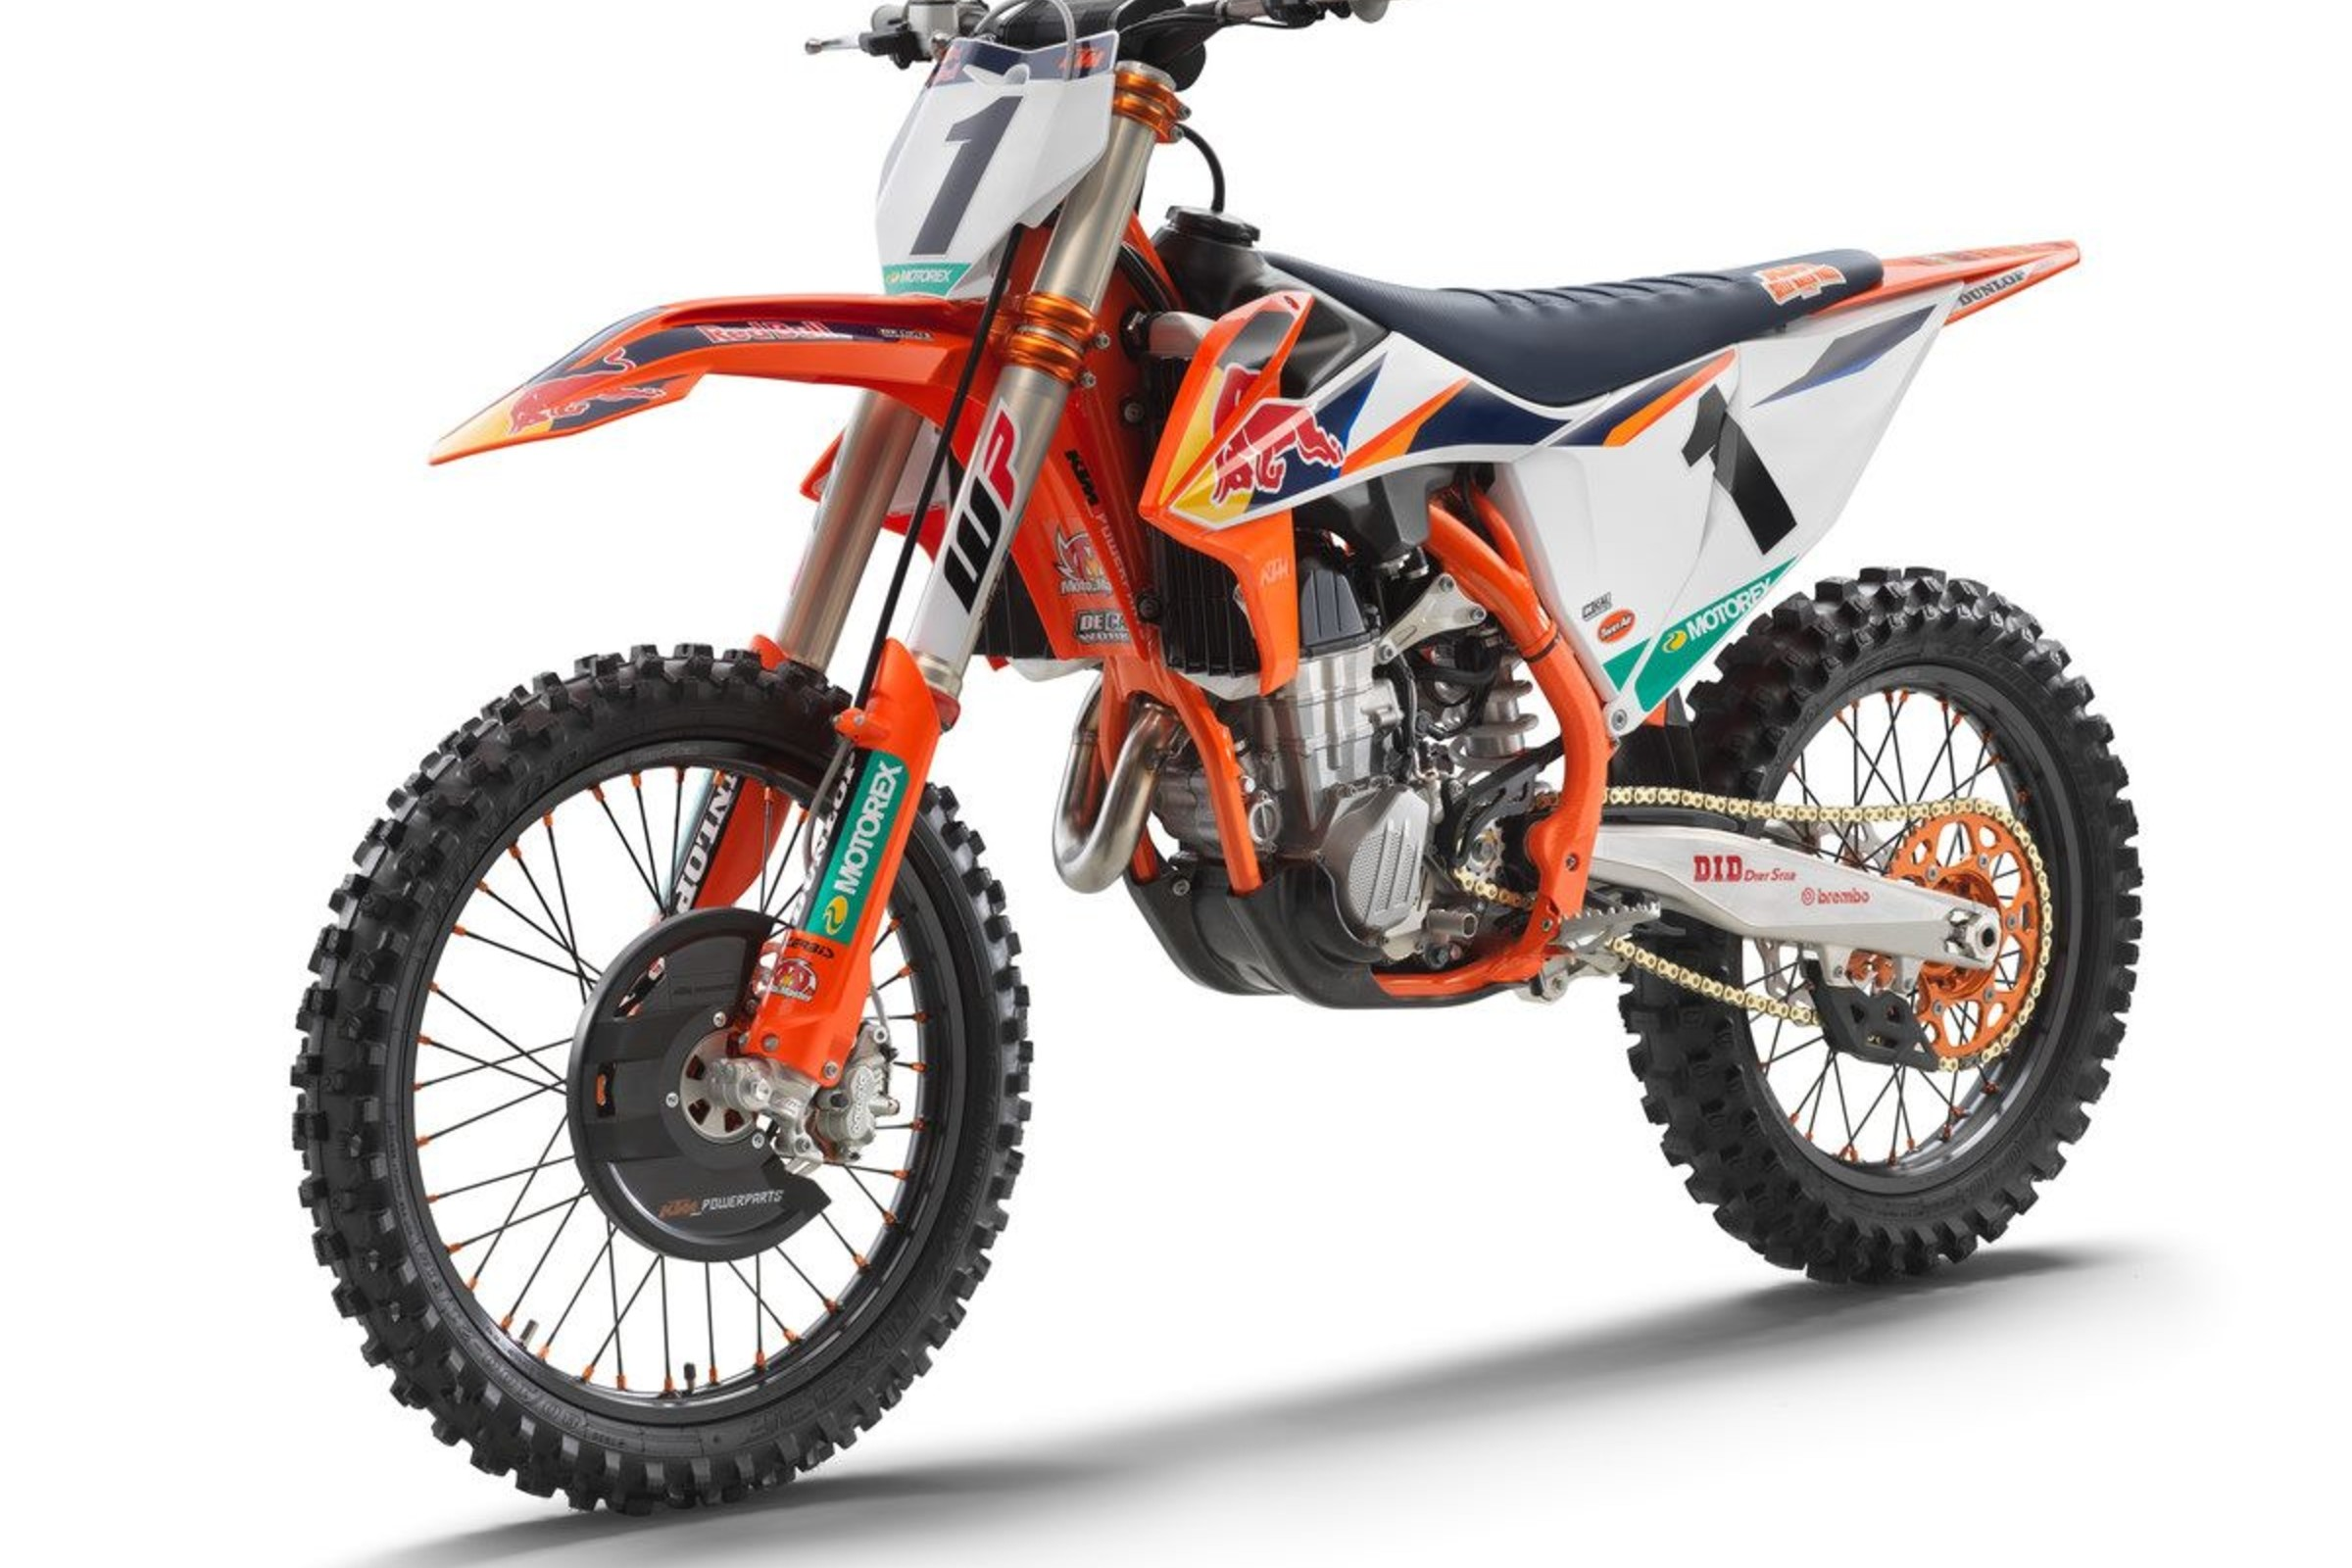 Ktm Releases 2020 450 Sx F Factory Edition Racer X Online